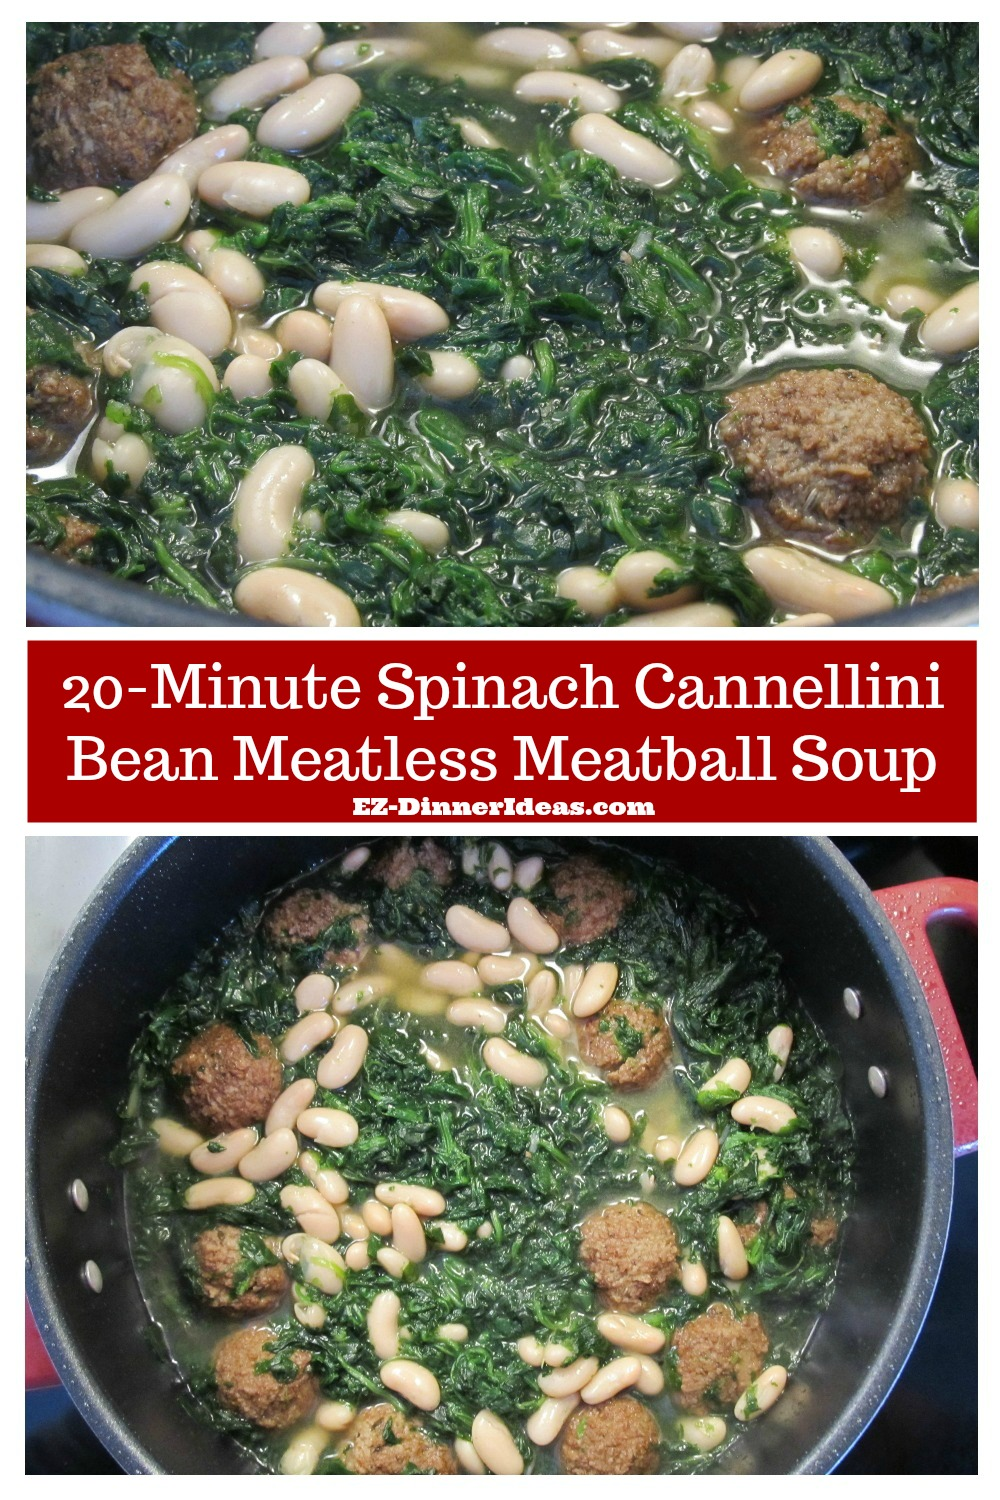 An easy veggie meal uses pantry staples.  This spinach cannellini bean meatless meatball soup only takes 20 minutes.  It is tasty, quick and guilt-free.